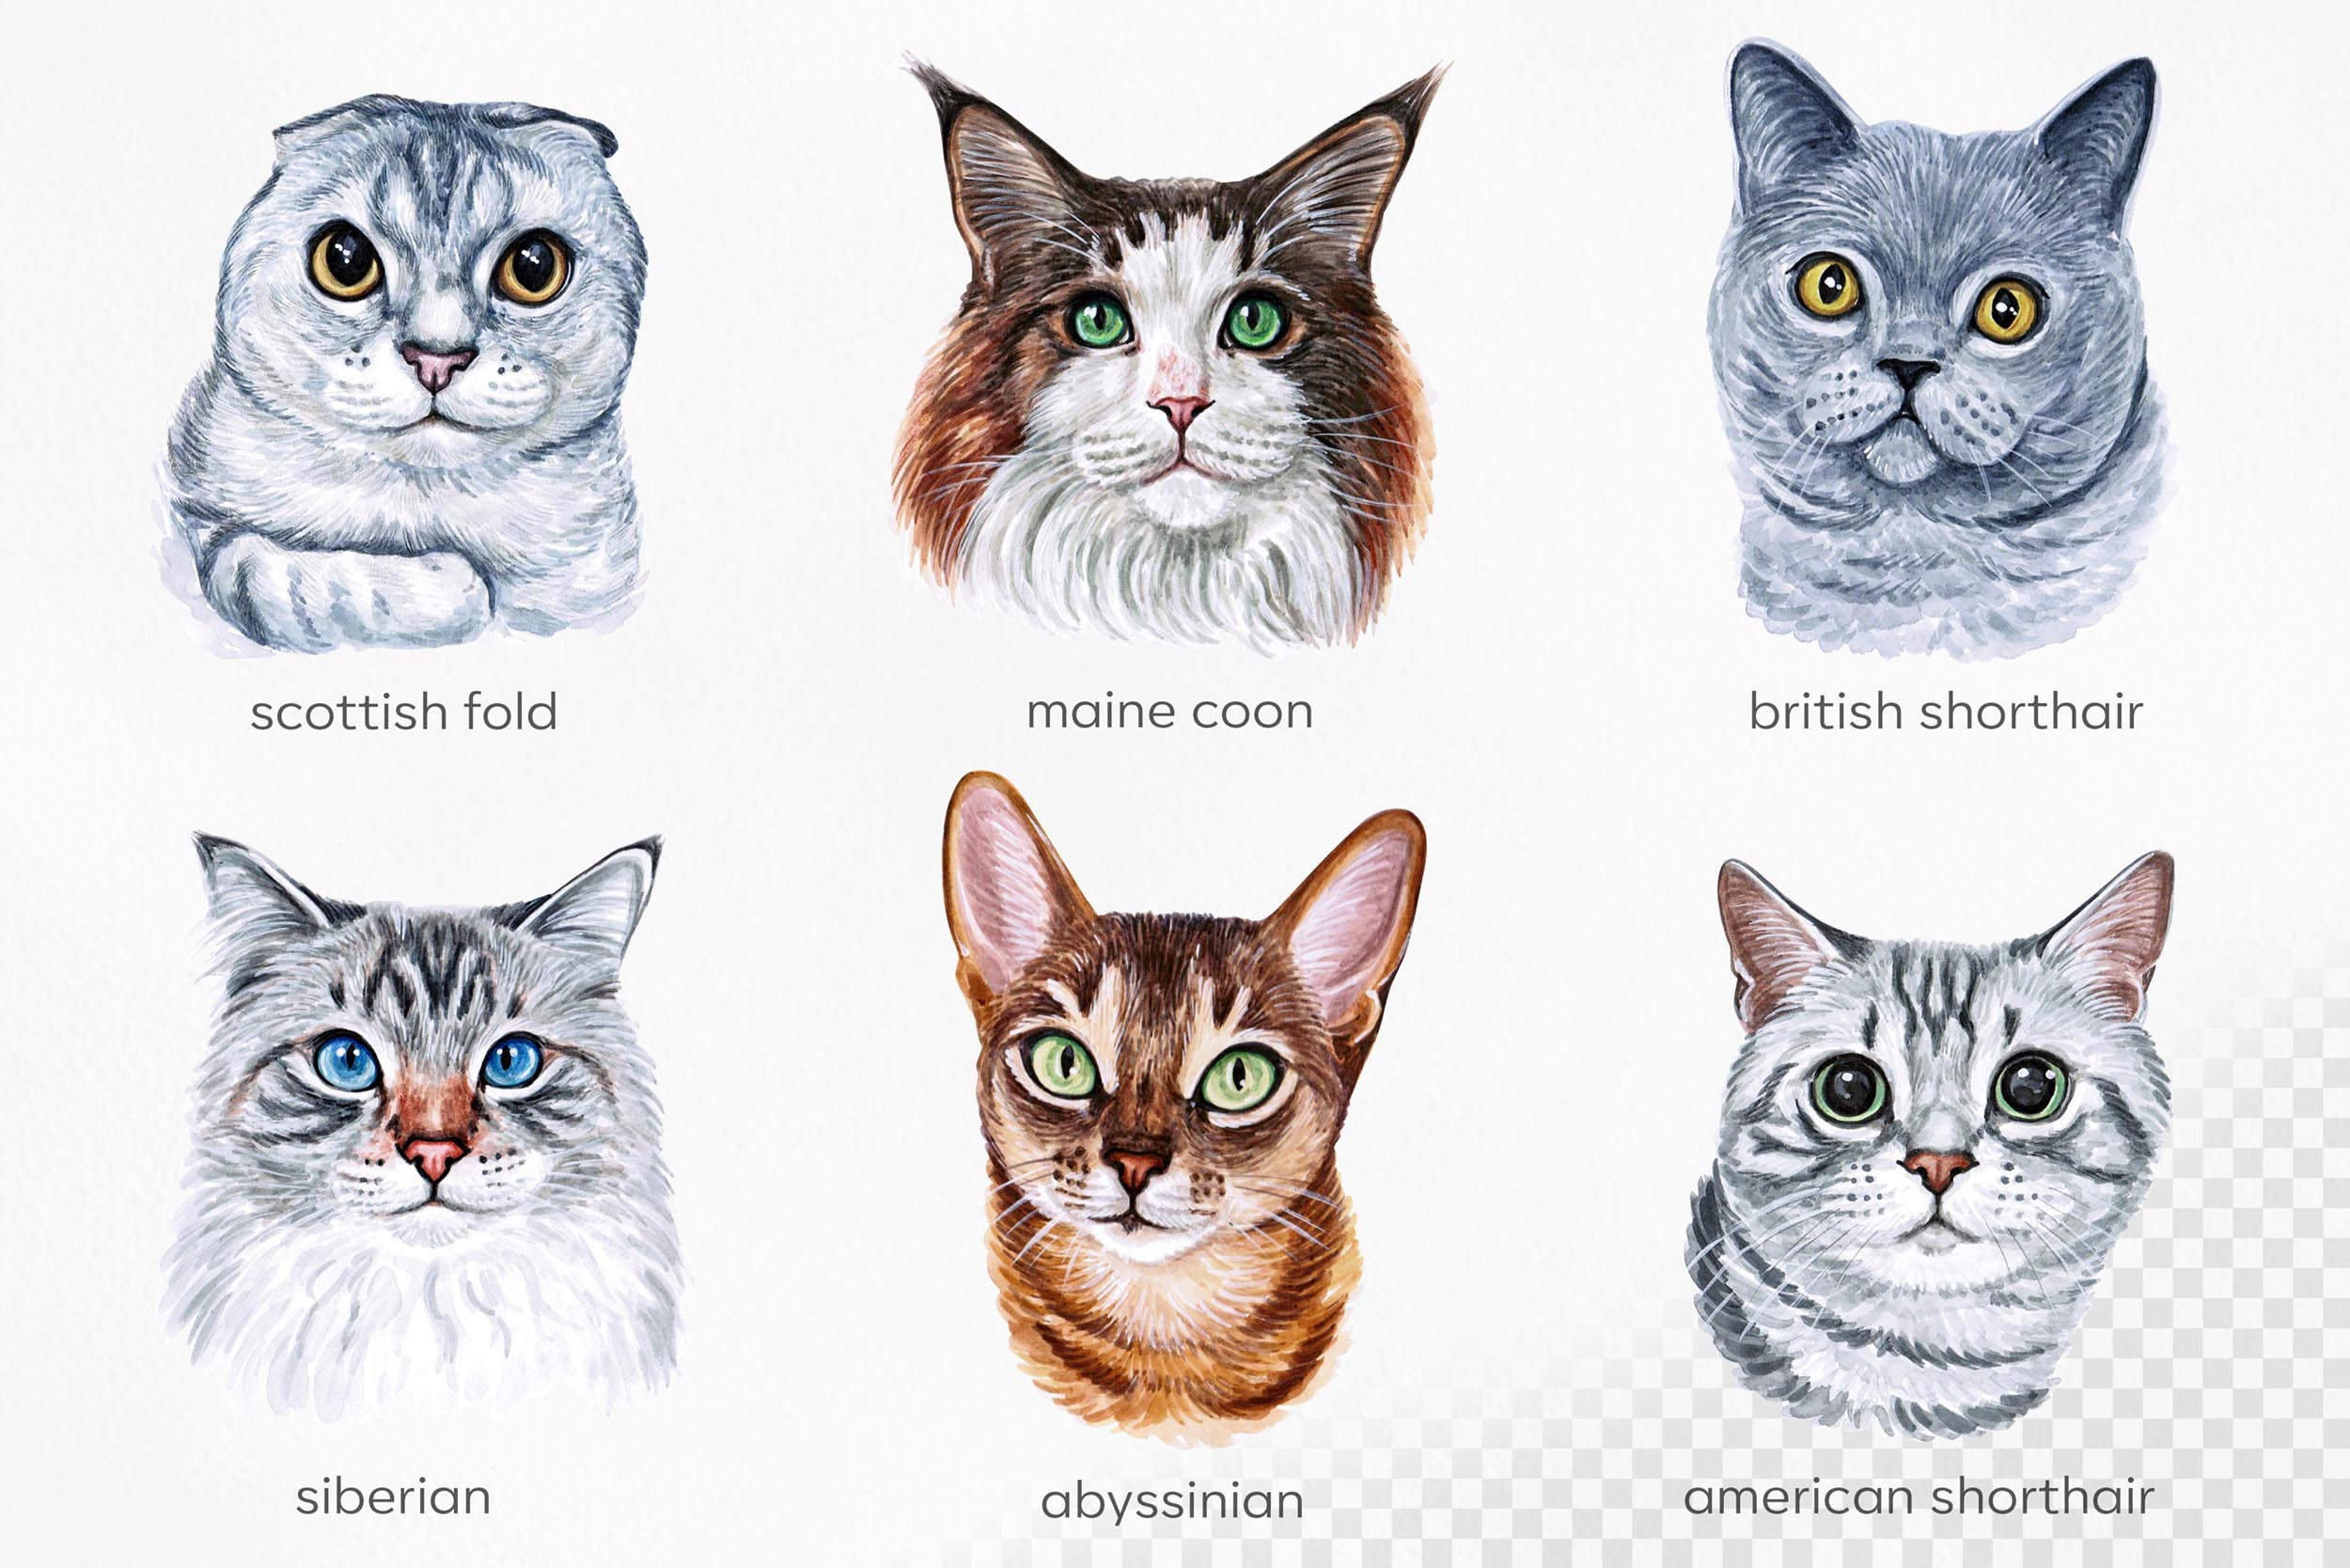 Watercolor 18 cat breeds illustrations. Cute cat. Meow. example image 3